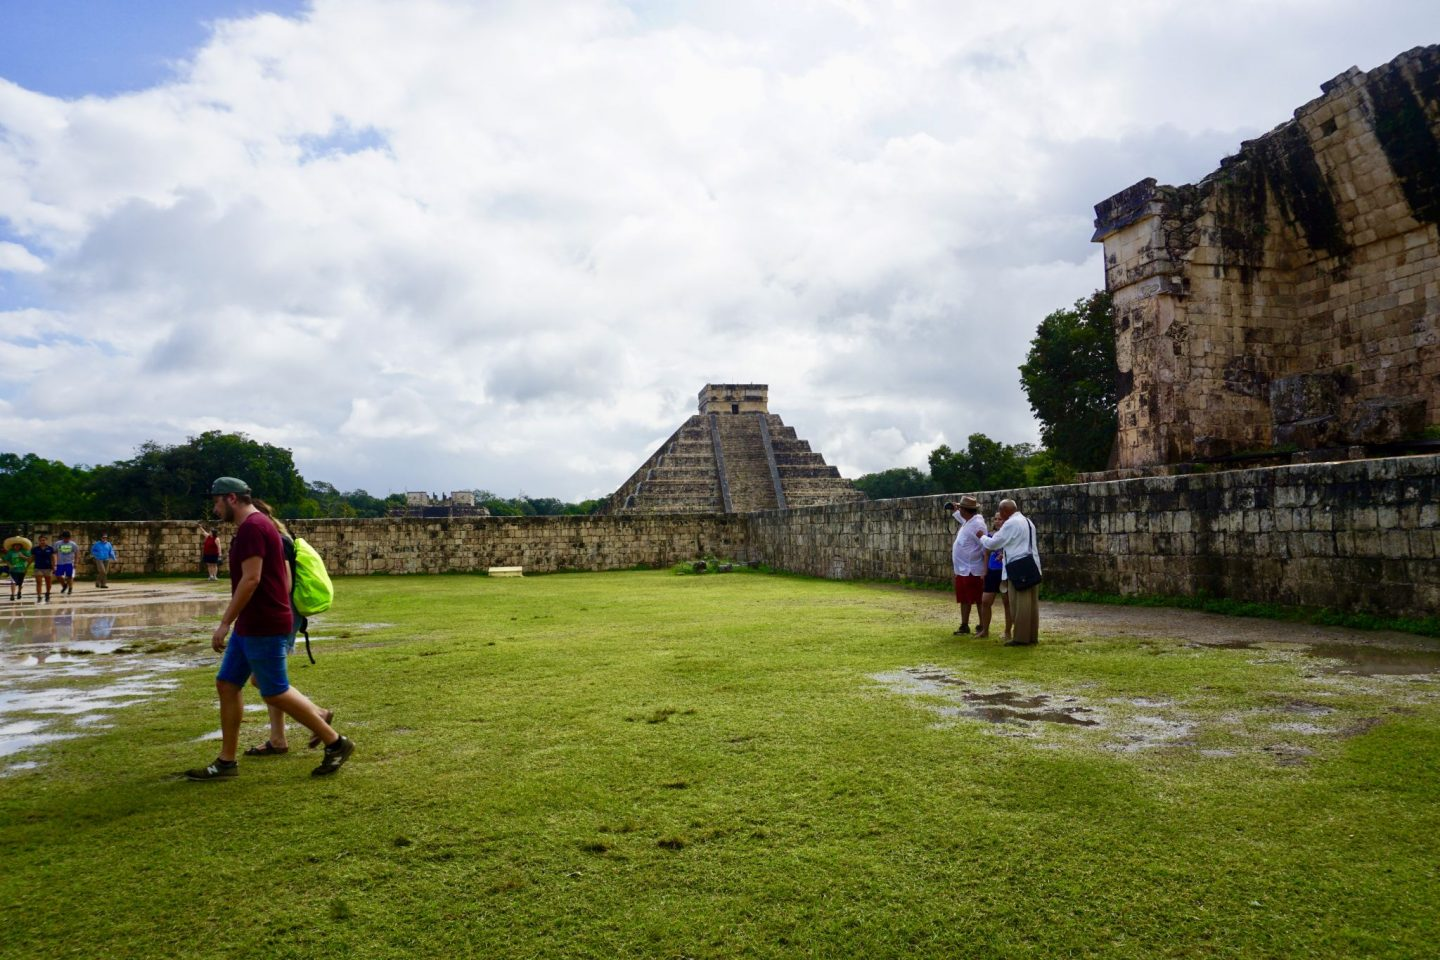 What to see in Chichen Itzá – Seven Things You Shouldn't Miss